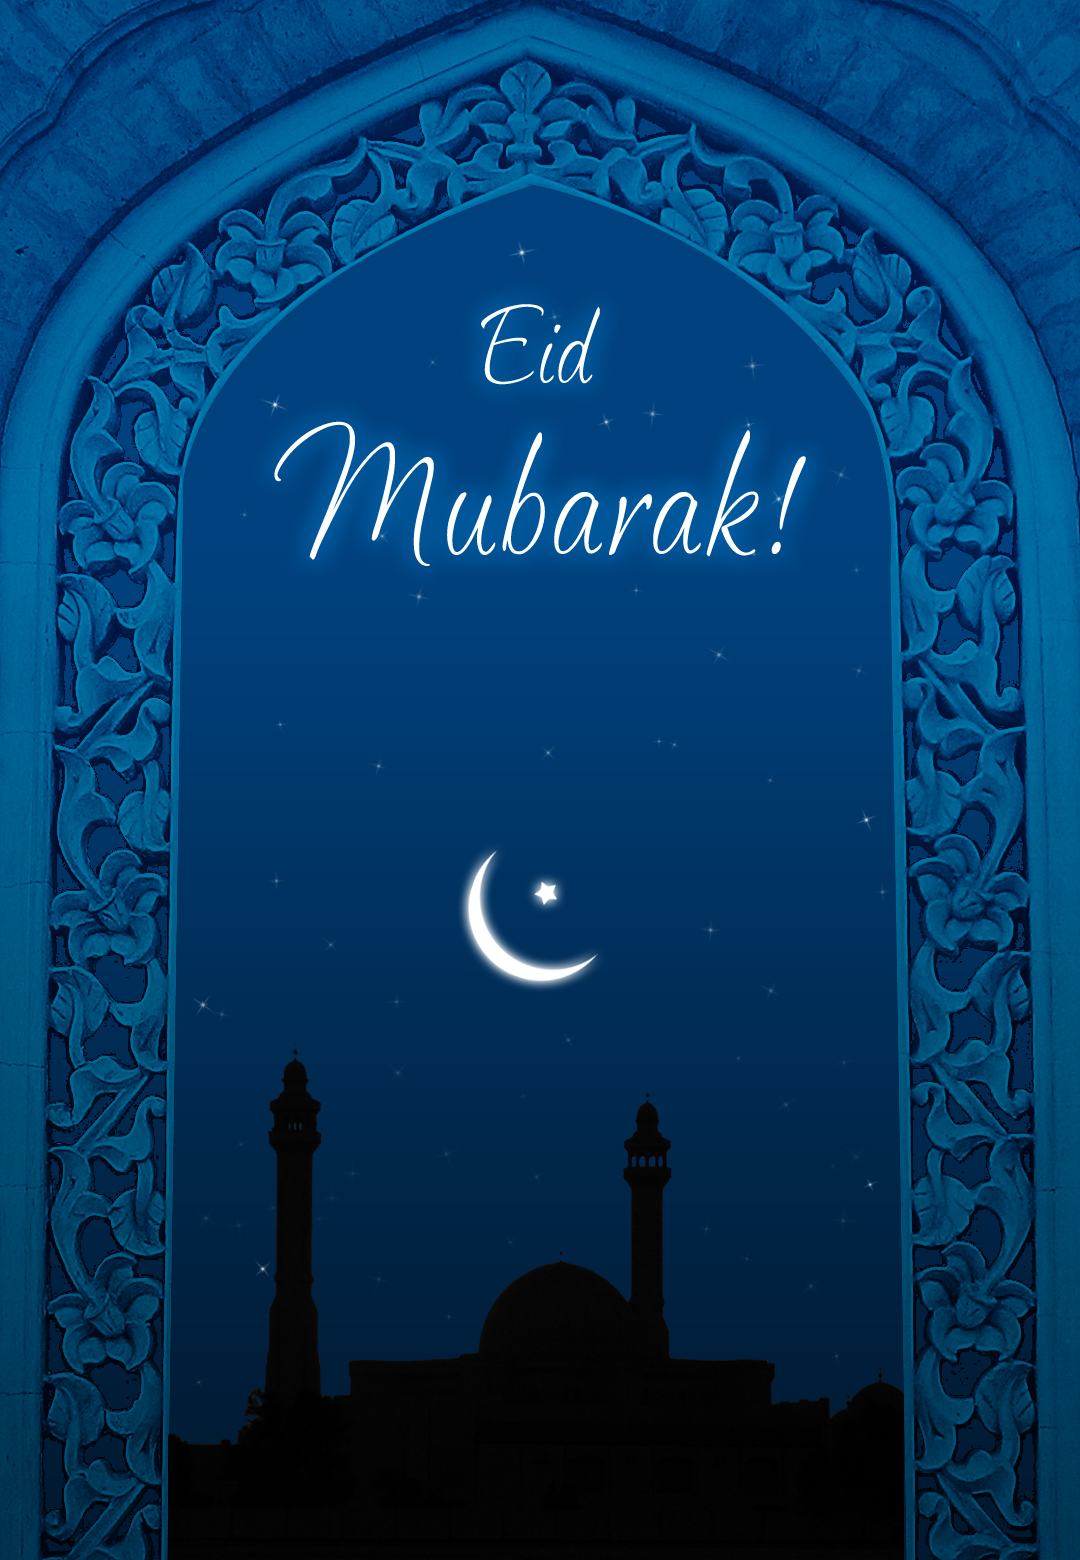 eid ul adha urdu essay Eid al-adha, also known as the greater eid or the festival of sacrifice, is an important muslim festival commemorating abraham's willingness to sacrifice his only son.